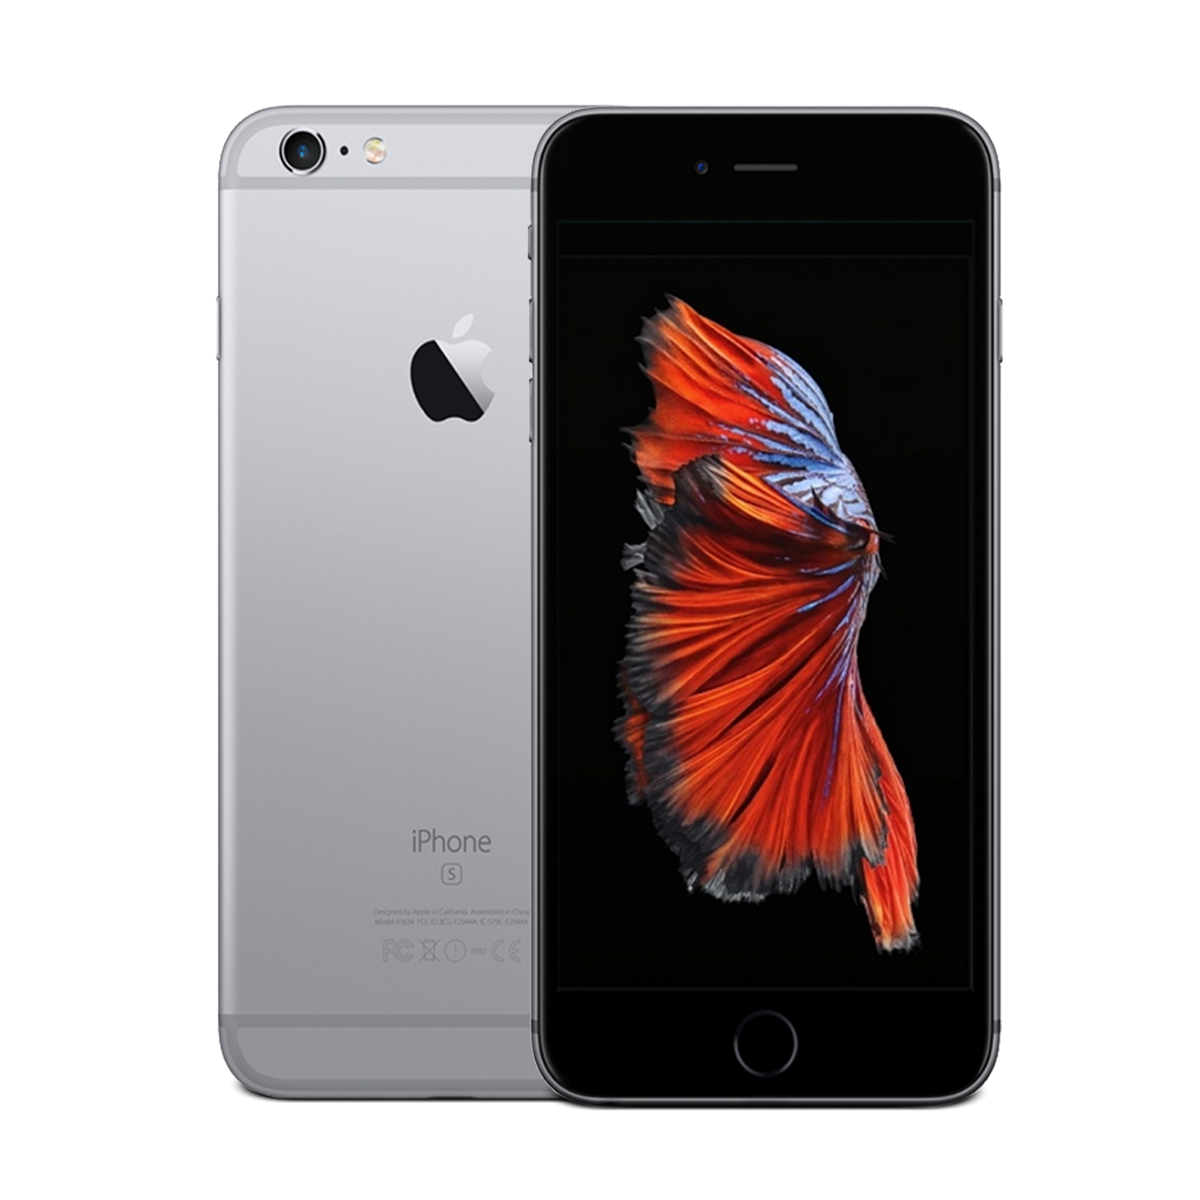 iPhone 6s 16GB Space Grey  | Very Good